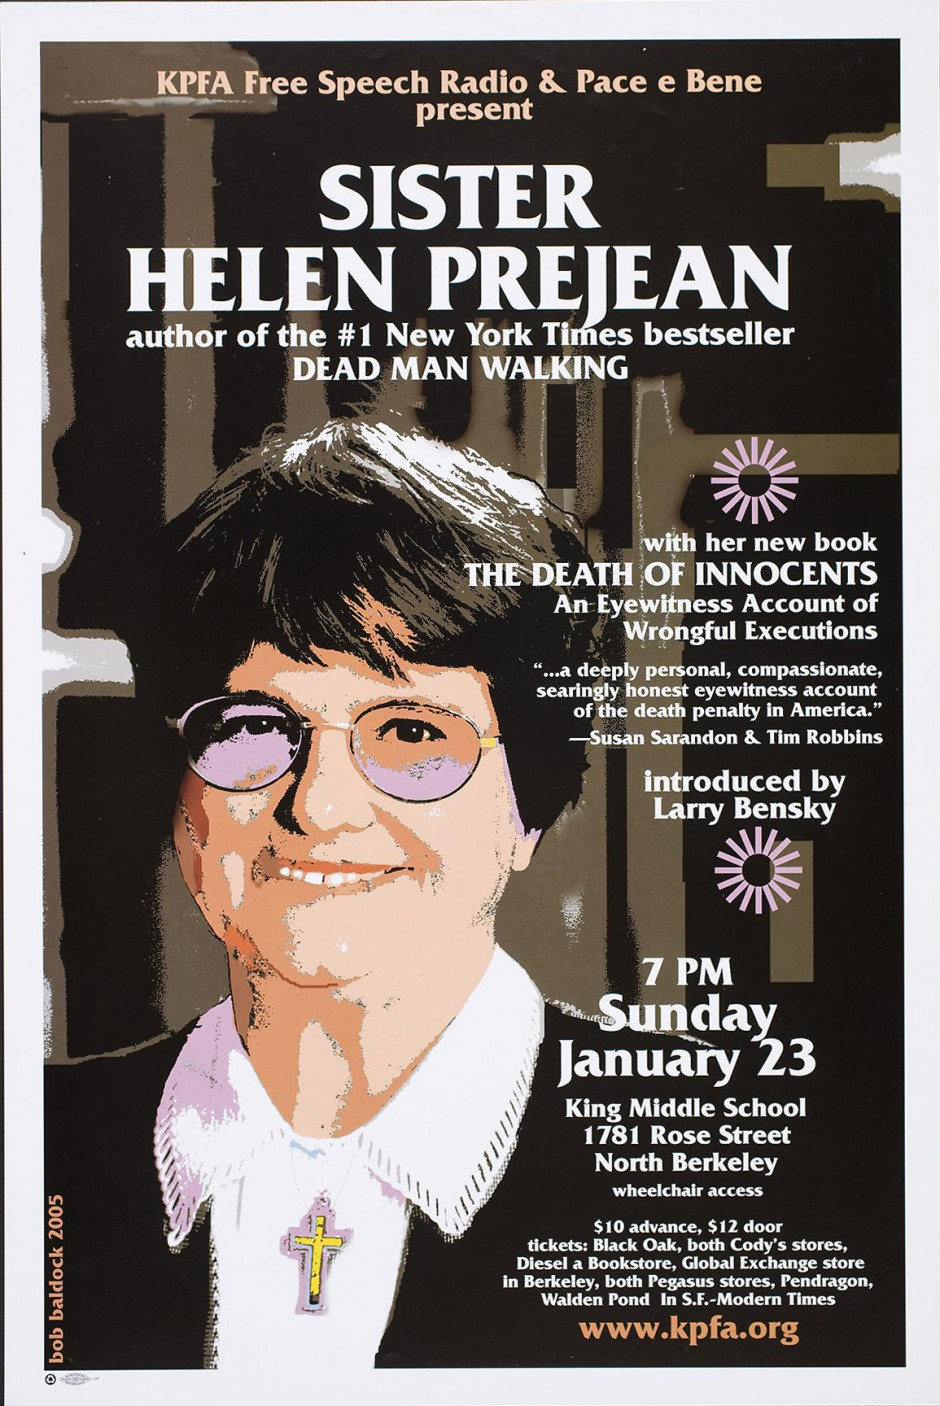 the controversies caused by the death penalty in the book dead man walking by helen prejean On its original publication in 1993, dead man walking emerged as an unprecedented look at the human consequences of the death penalty now, some two decades later, this story—which has inspired a film, a stage play, an opera and a musical album—is more gut-wrenching than ever, stirring deep and life-changing reflection in all who encounter it.